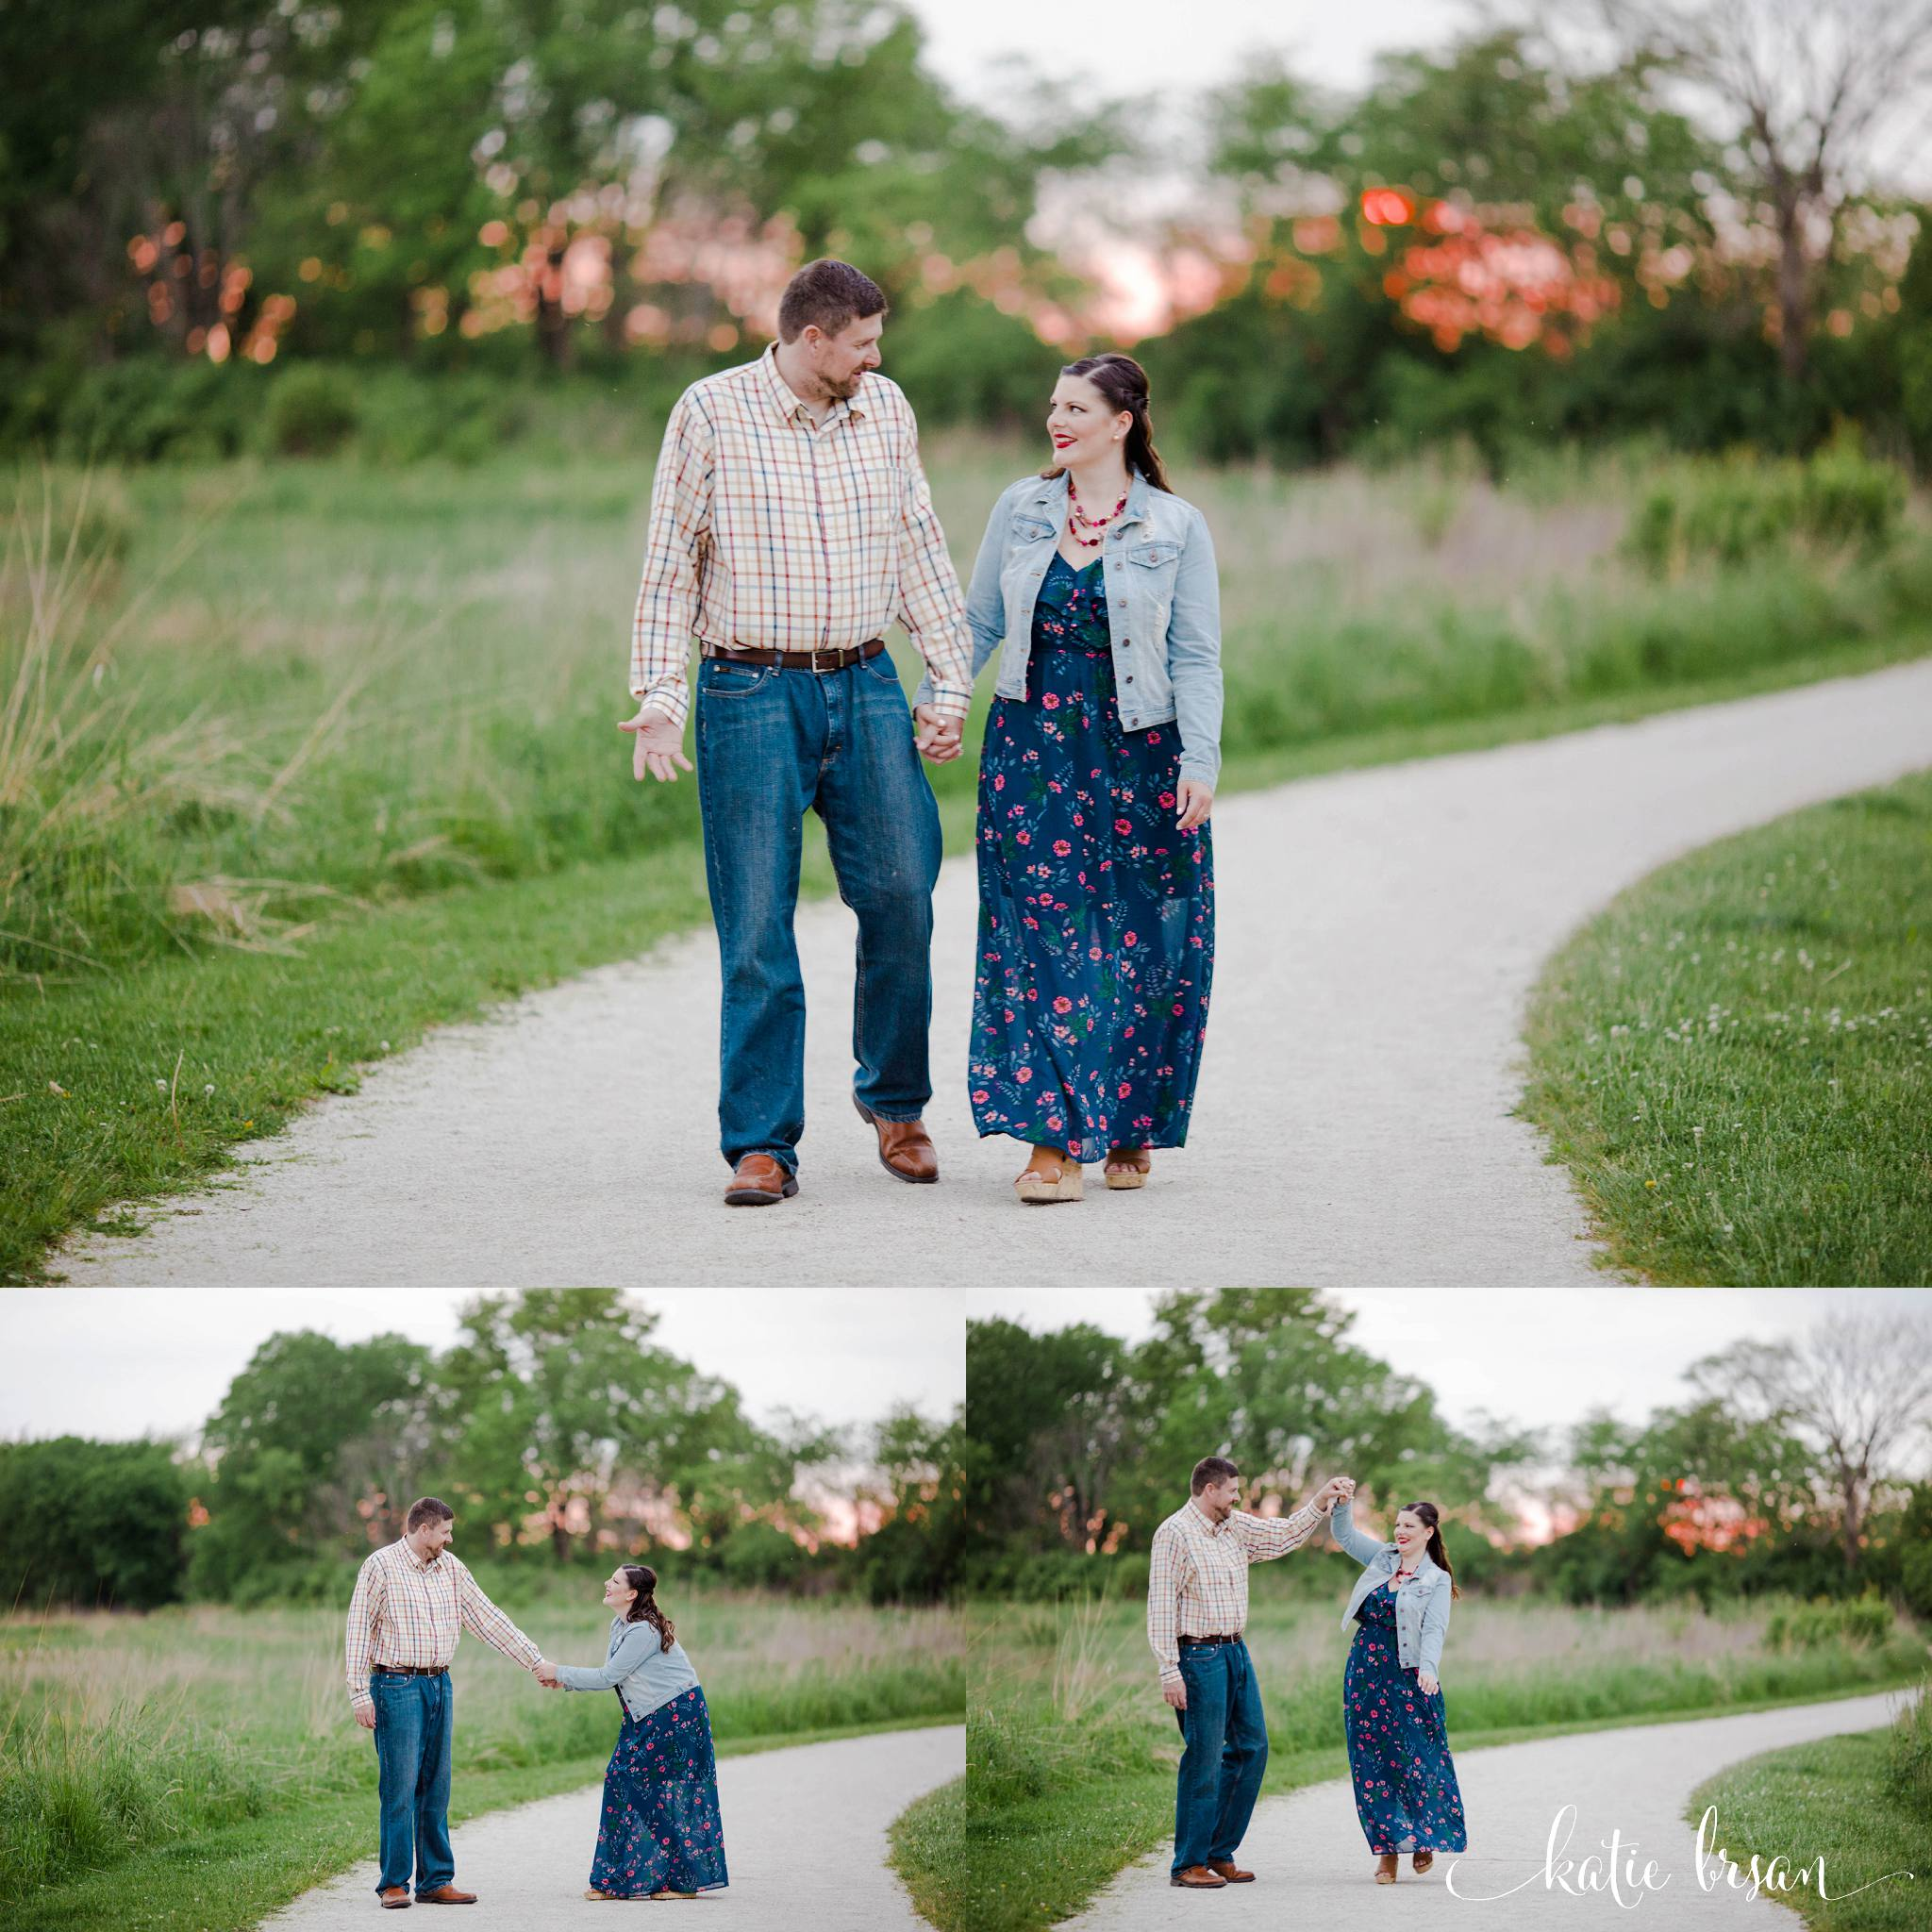 KatieBrsan-HomerGlen-NewLenox-EngagementSession-HadleyValley-TeacherEngagementSession-ChicagoWeddingPhotographer_0590.jpg